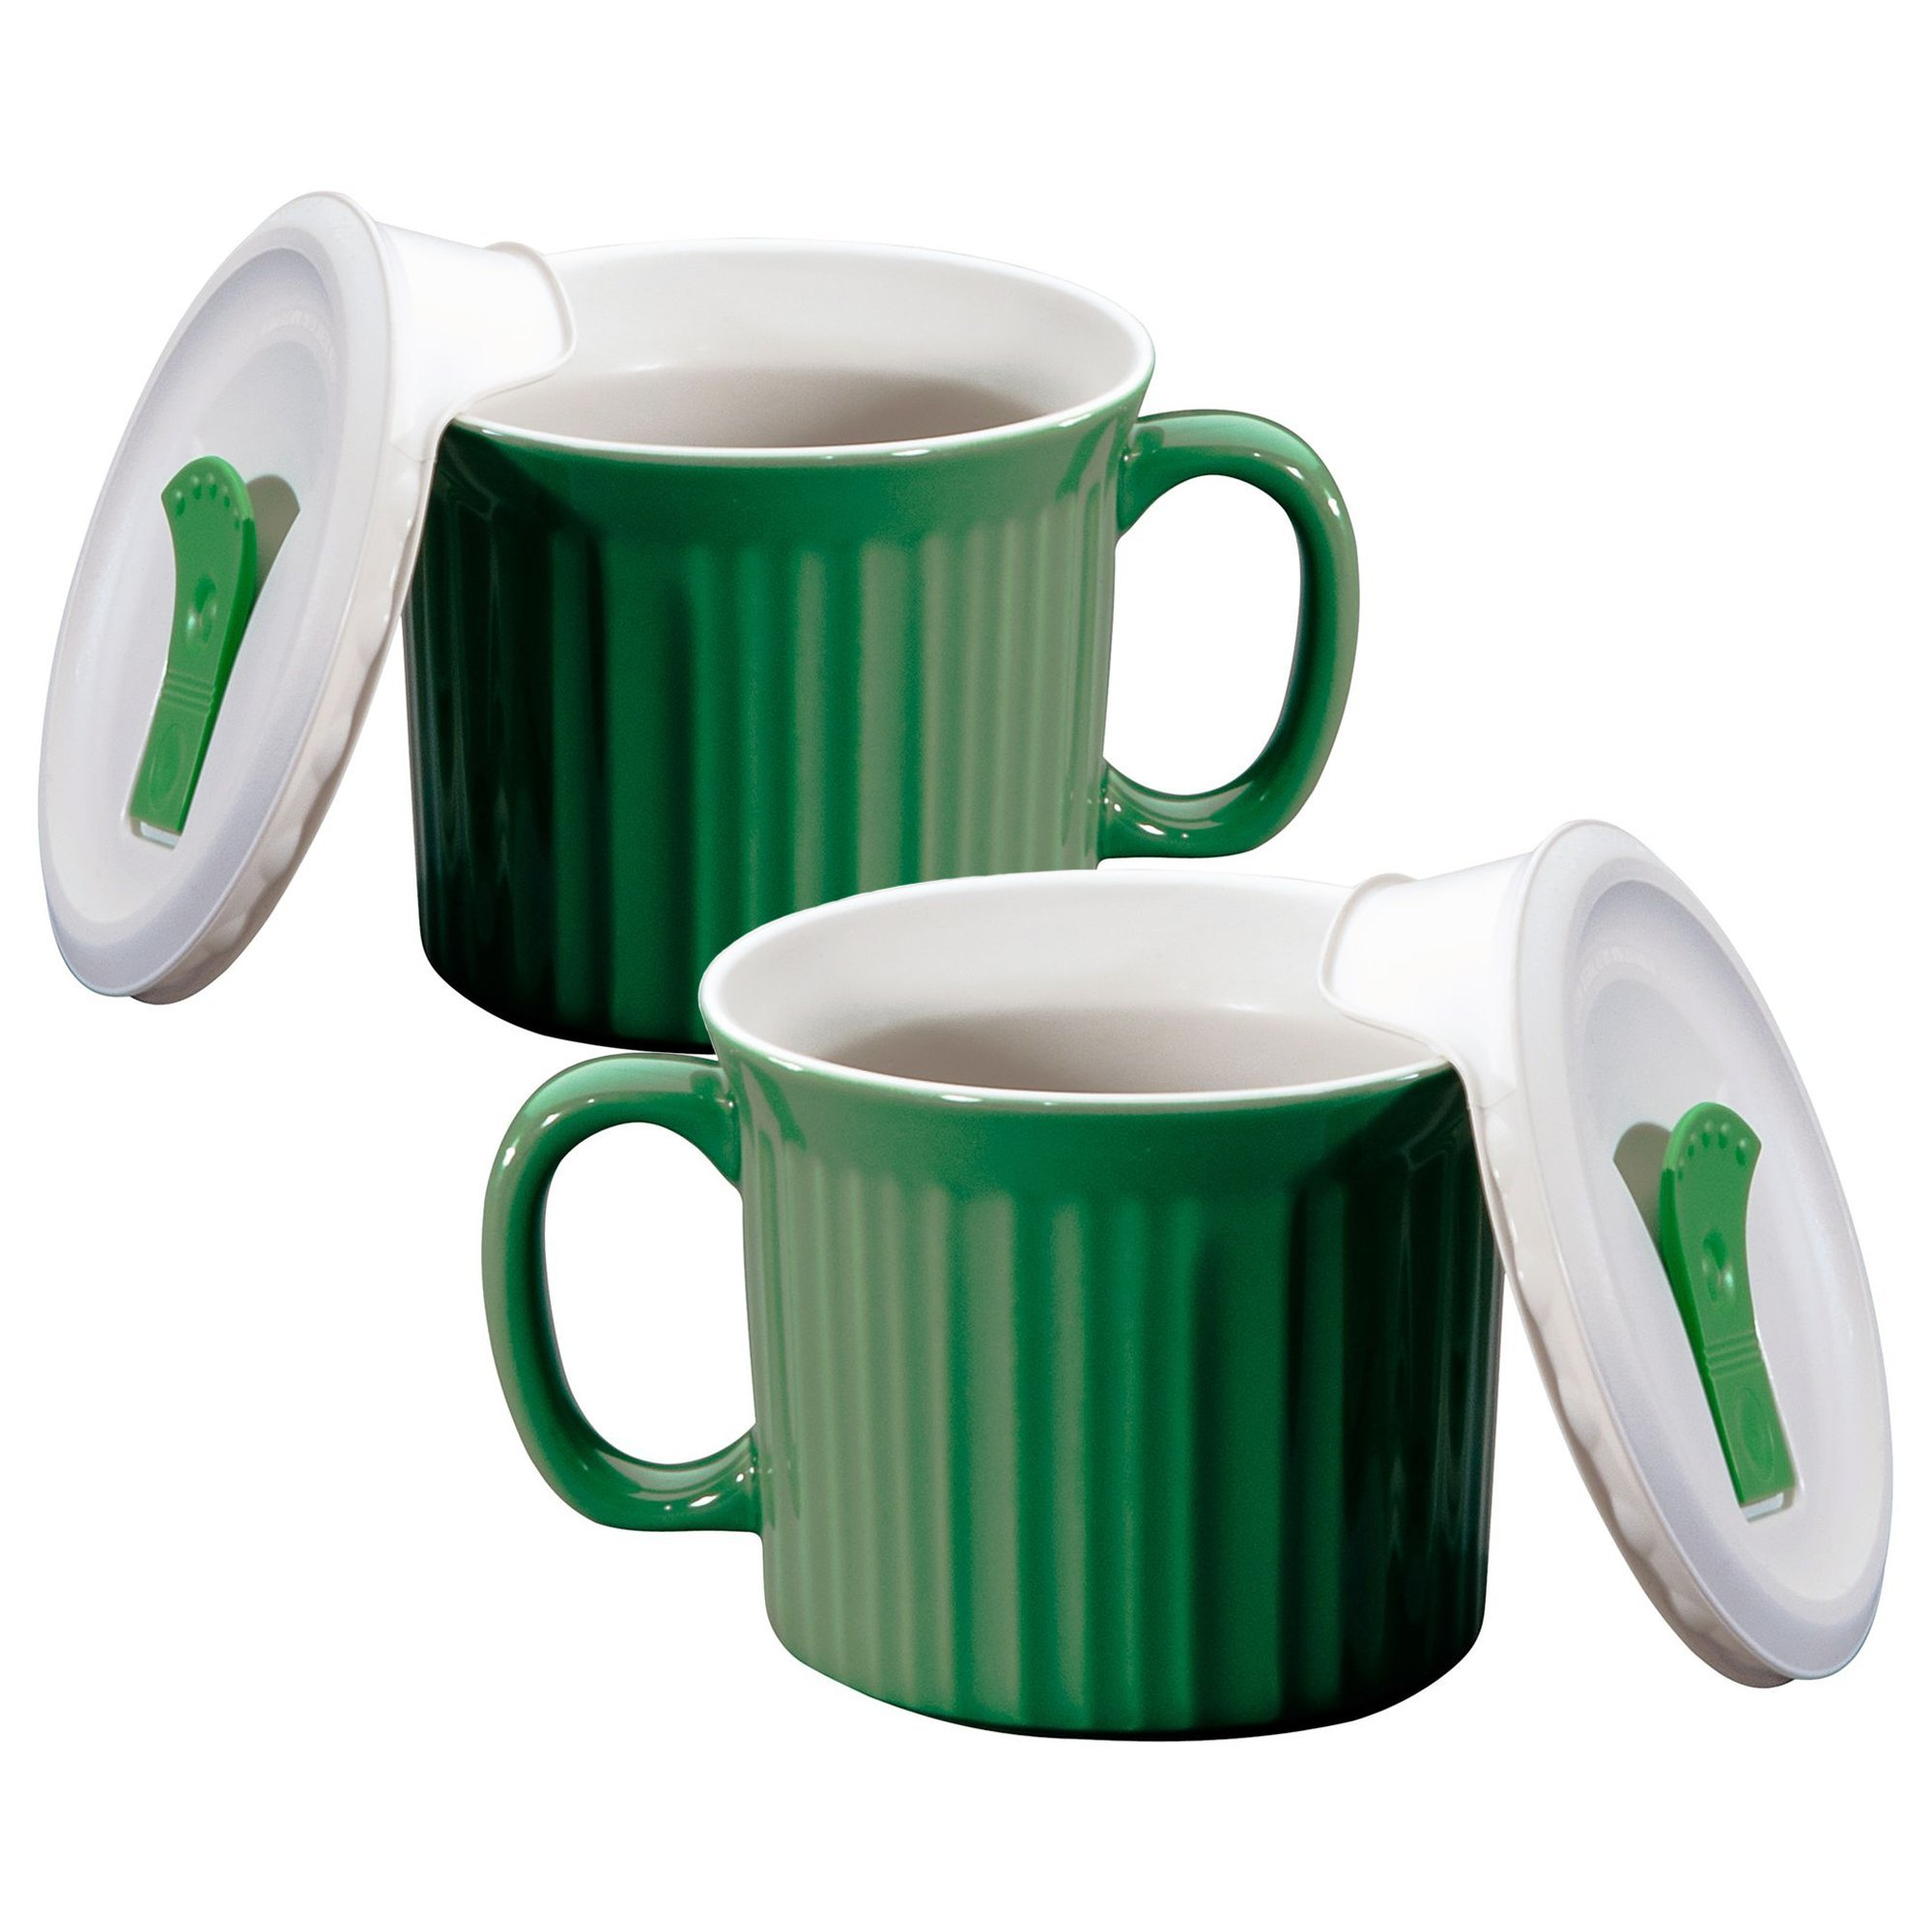 Corningware 20-Ounce Oven Safe Meal Mug with Vented Lid, Green Tea, Pack of 2